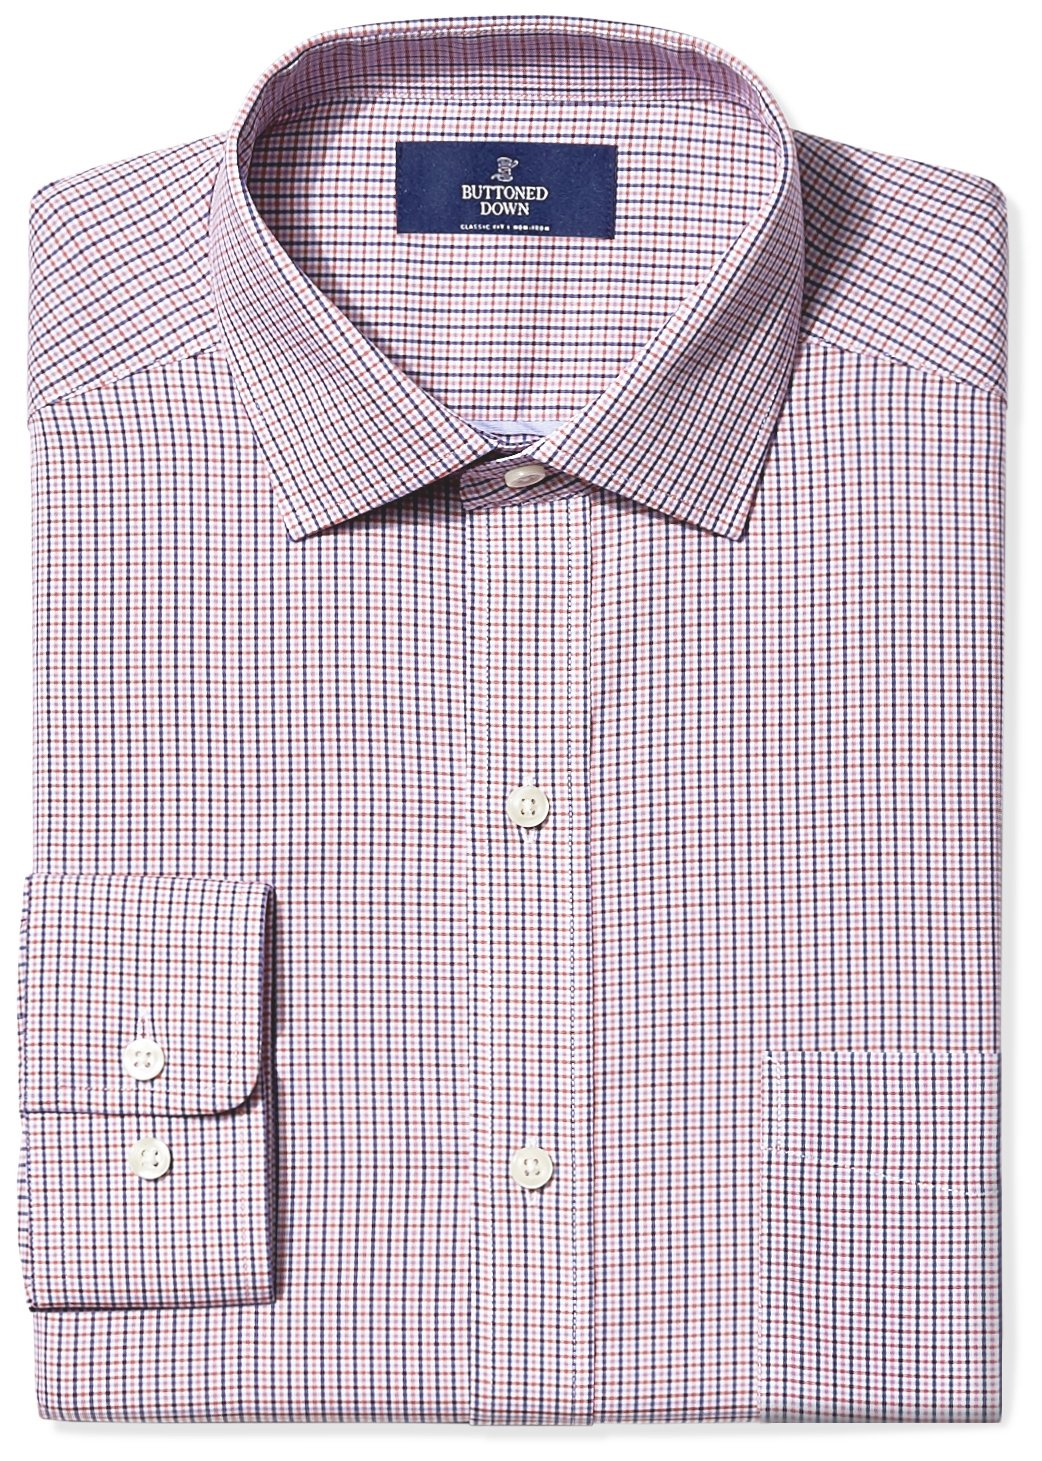 Buttoned Down Men's Classic Fit Spread-Collar Non-Iron Dress Shirt, Berry/Red/Navy Small Tatersol, 16.5'' Neck 38'' Sleeve